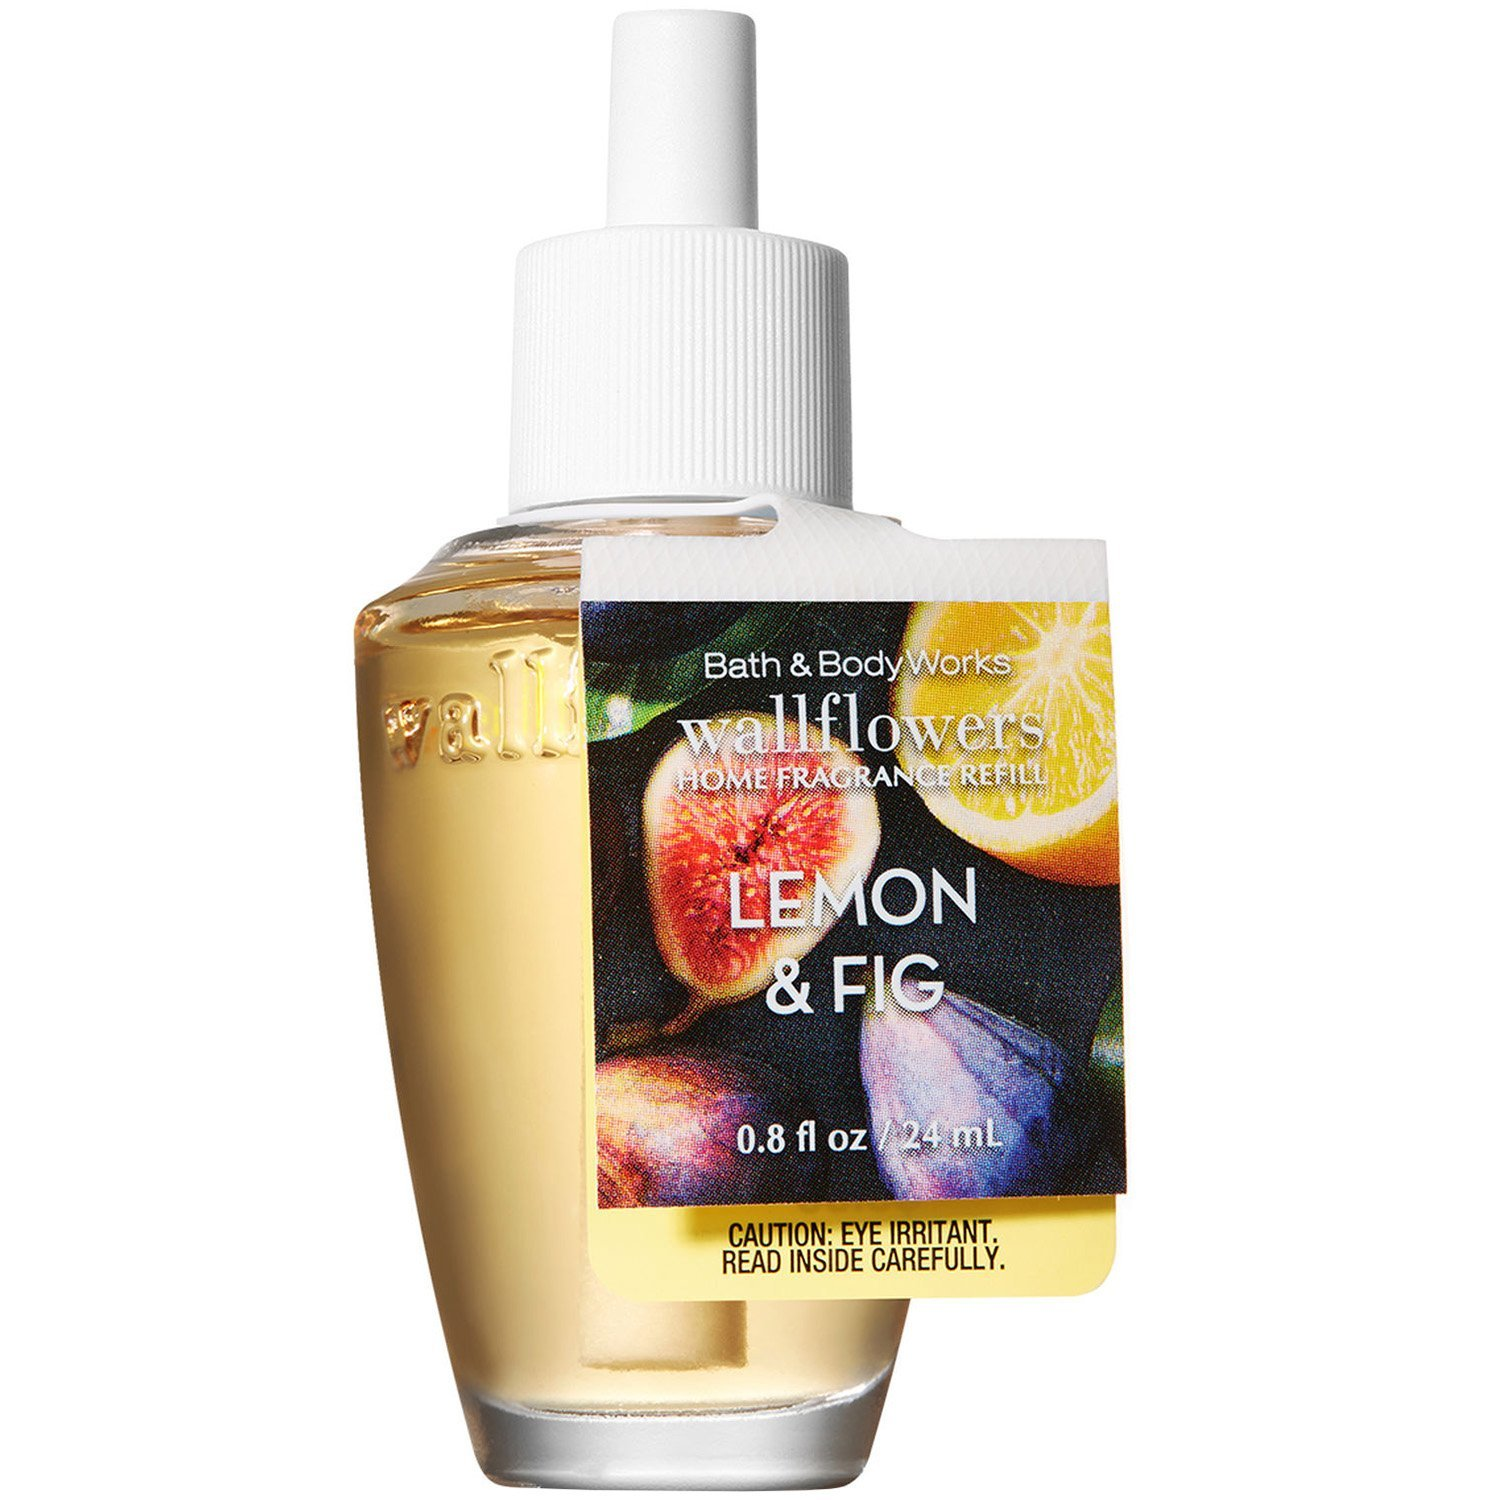 Bath and Body Works Lemon Fig Wallflowers Home Fragrance Refill 0.8 Fluid Ounce